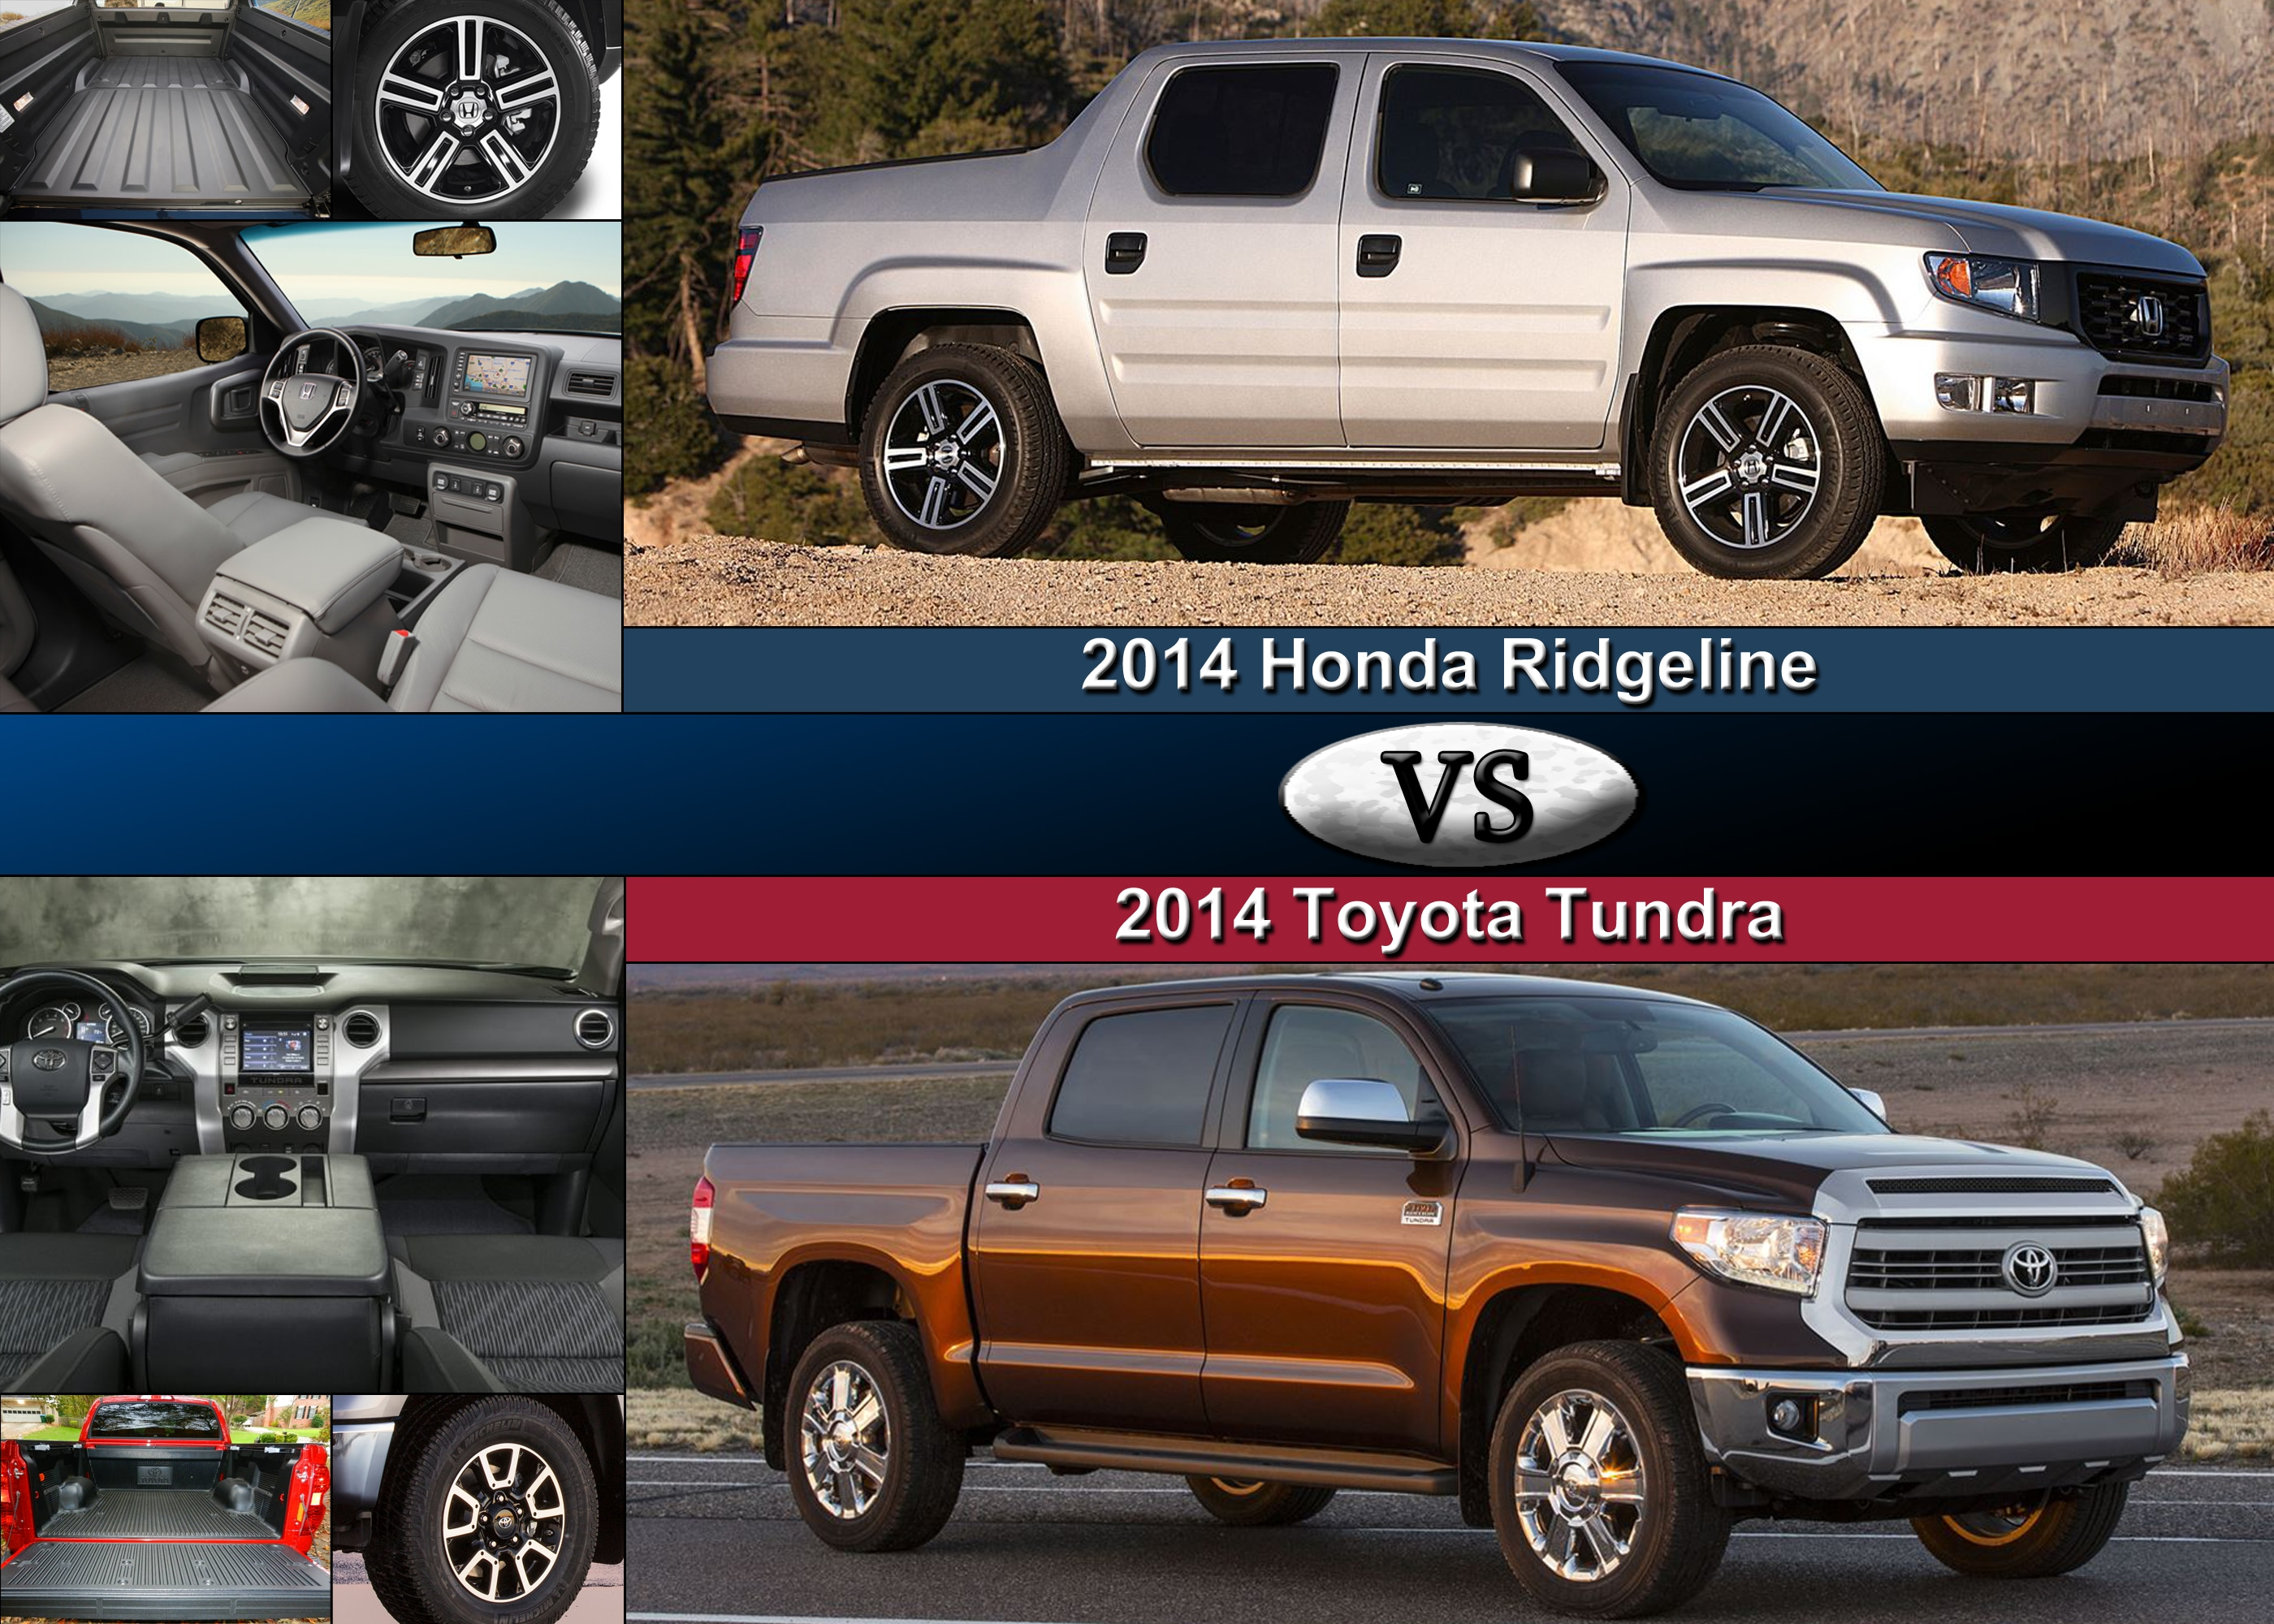 2014 Honda Ridgeline Vs Toyota Tundra Comparing Key Features Fuel Filter Location